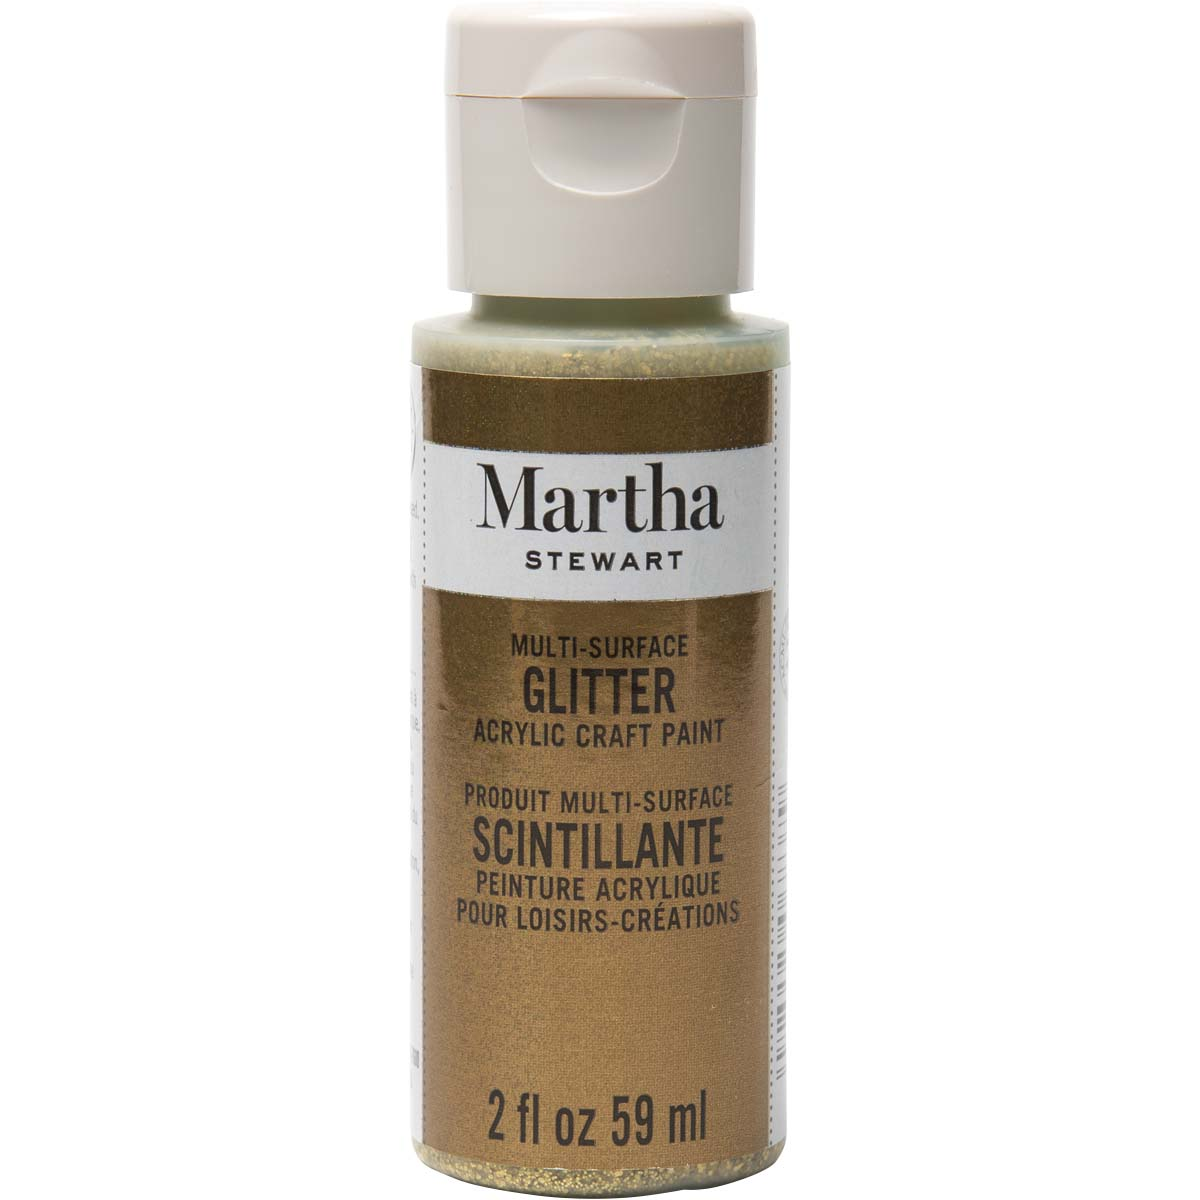 Martha Stewart ® Multi-Surface Glitter Acrylic Craft Paint - Florentine Gold, 2 oz. - 32176CA